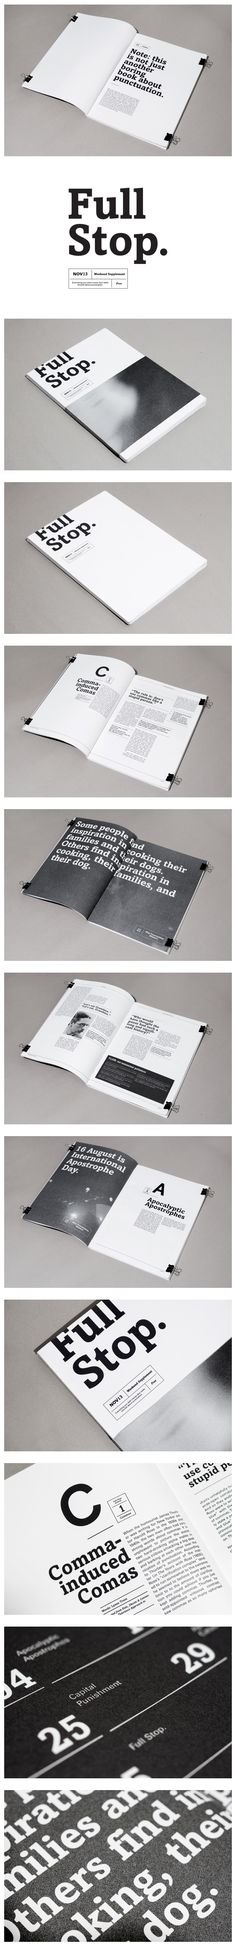 Editorial Design by